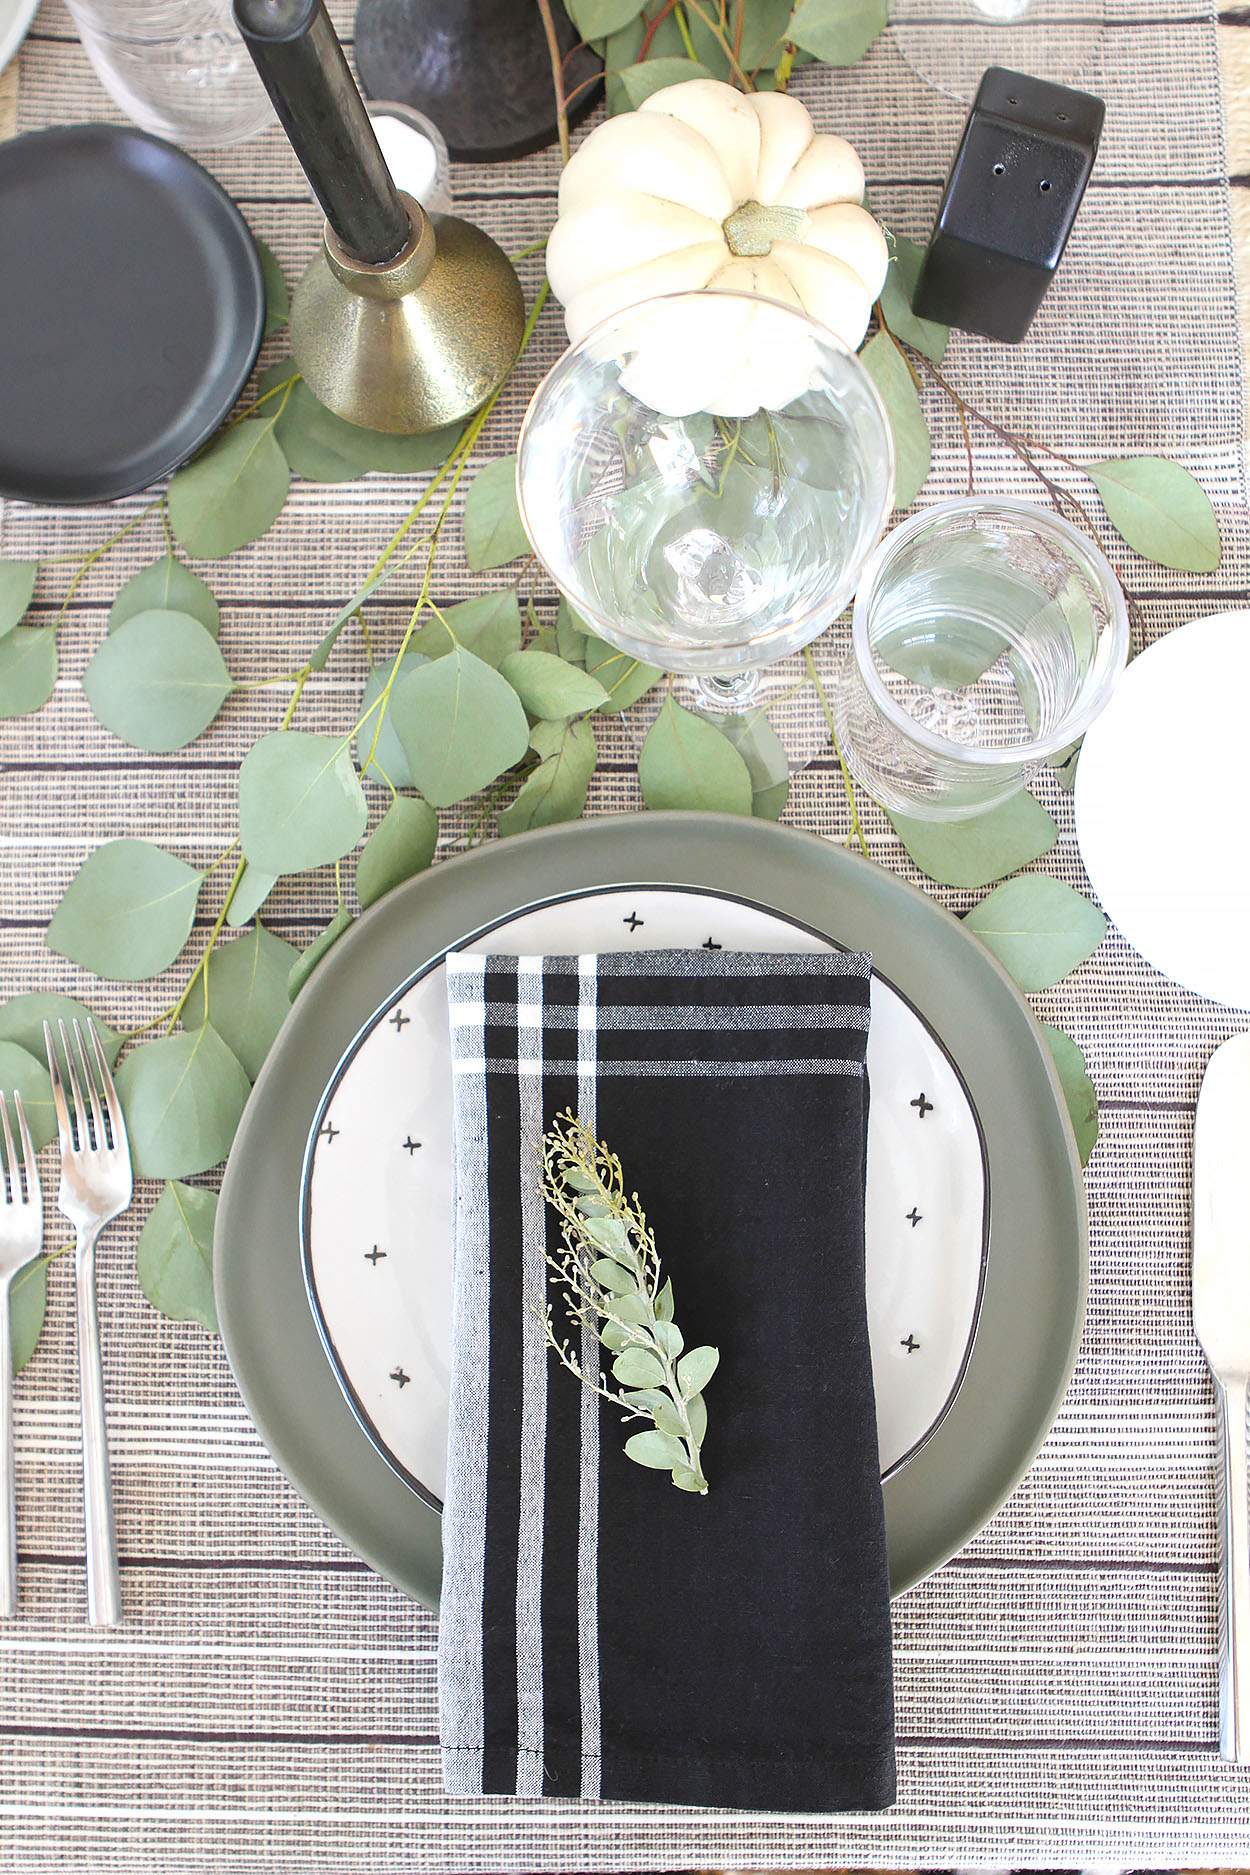 a plate setting with a gray plate topped with a white plate with black x's and a black and white napkin topped with greenery